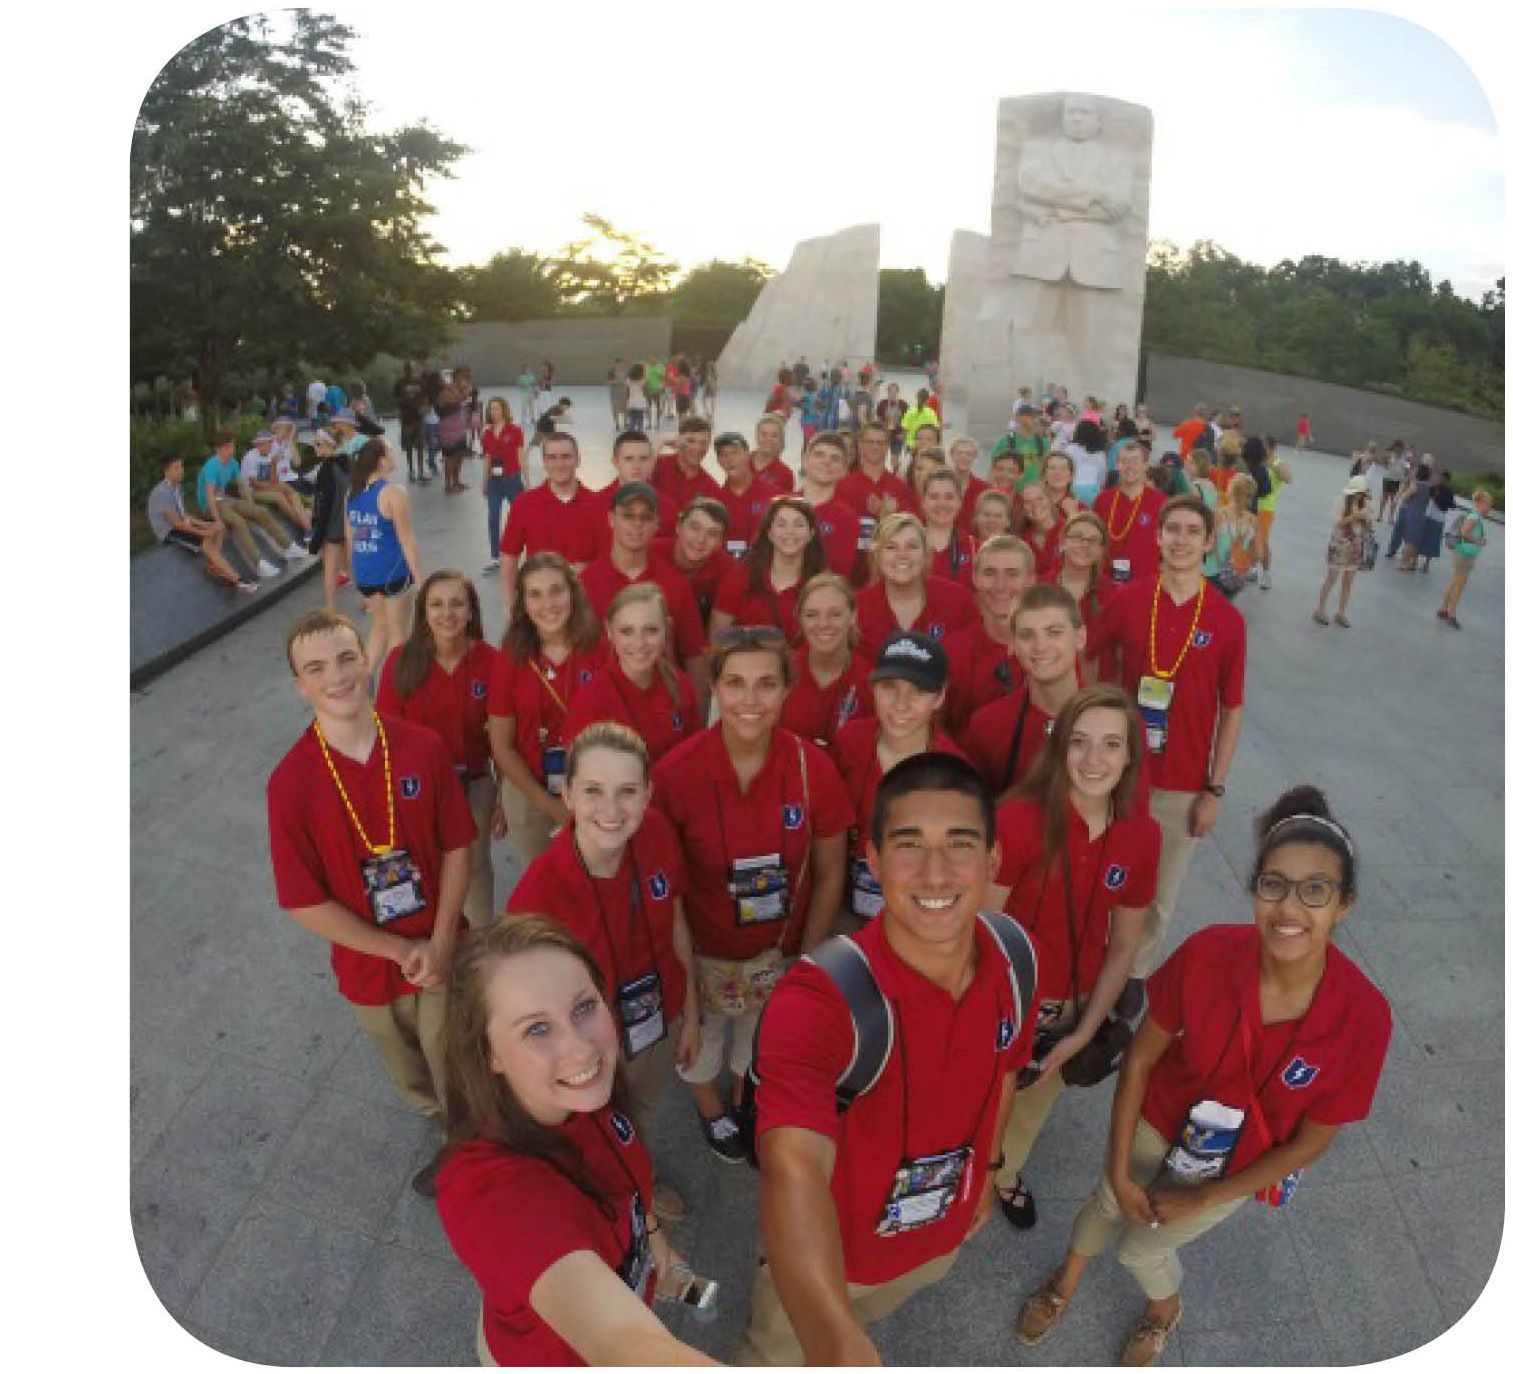 Youth tour group selfie